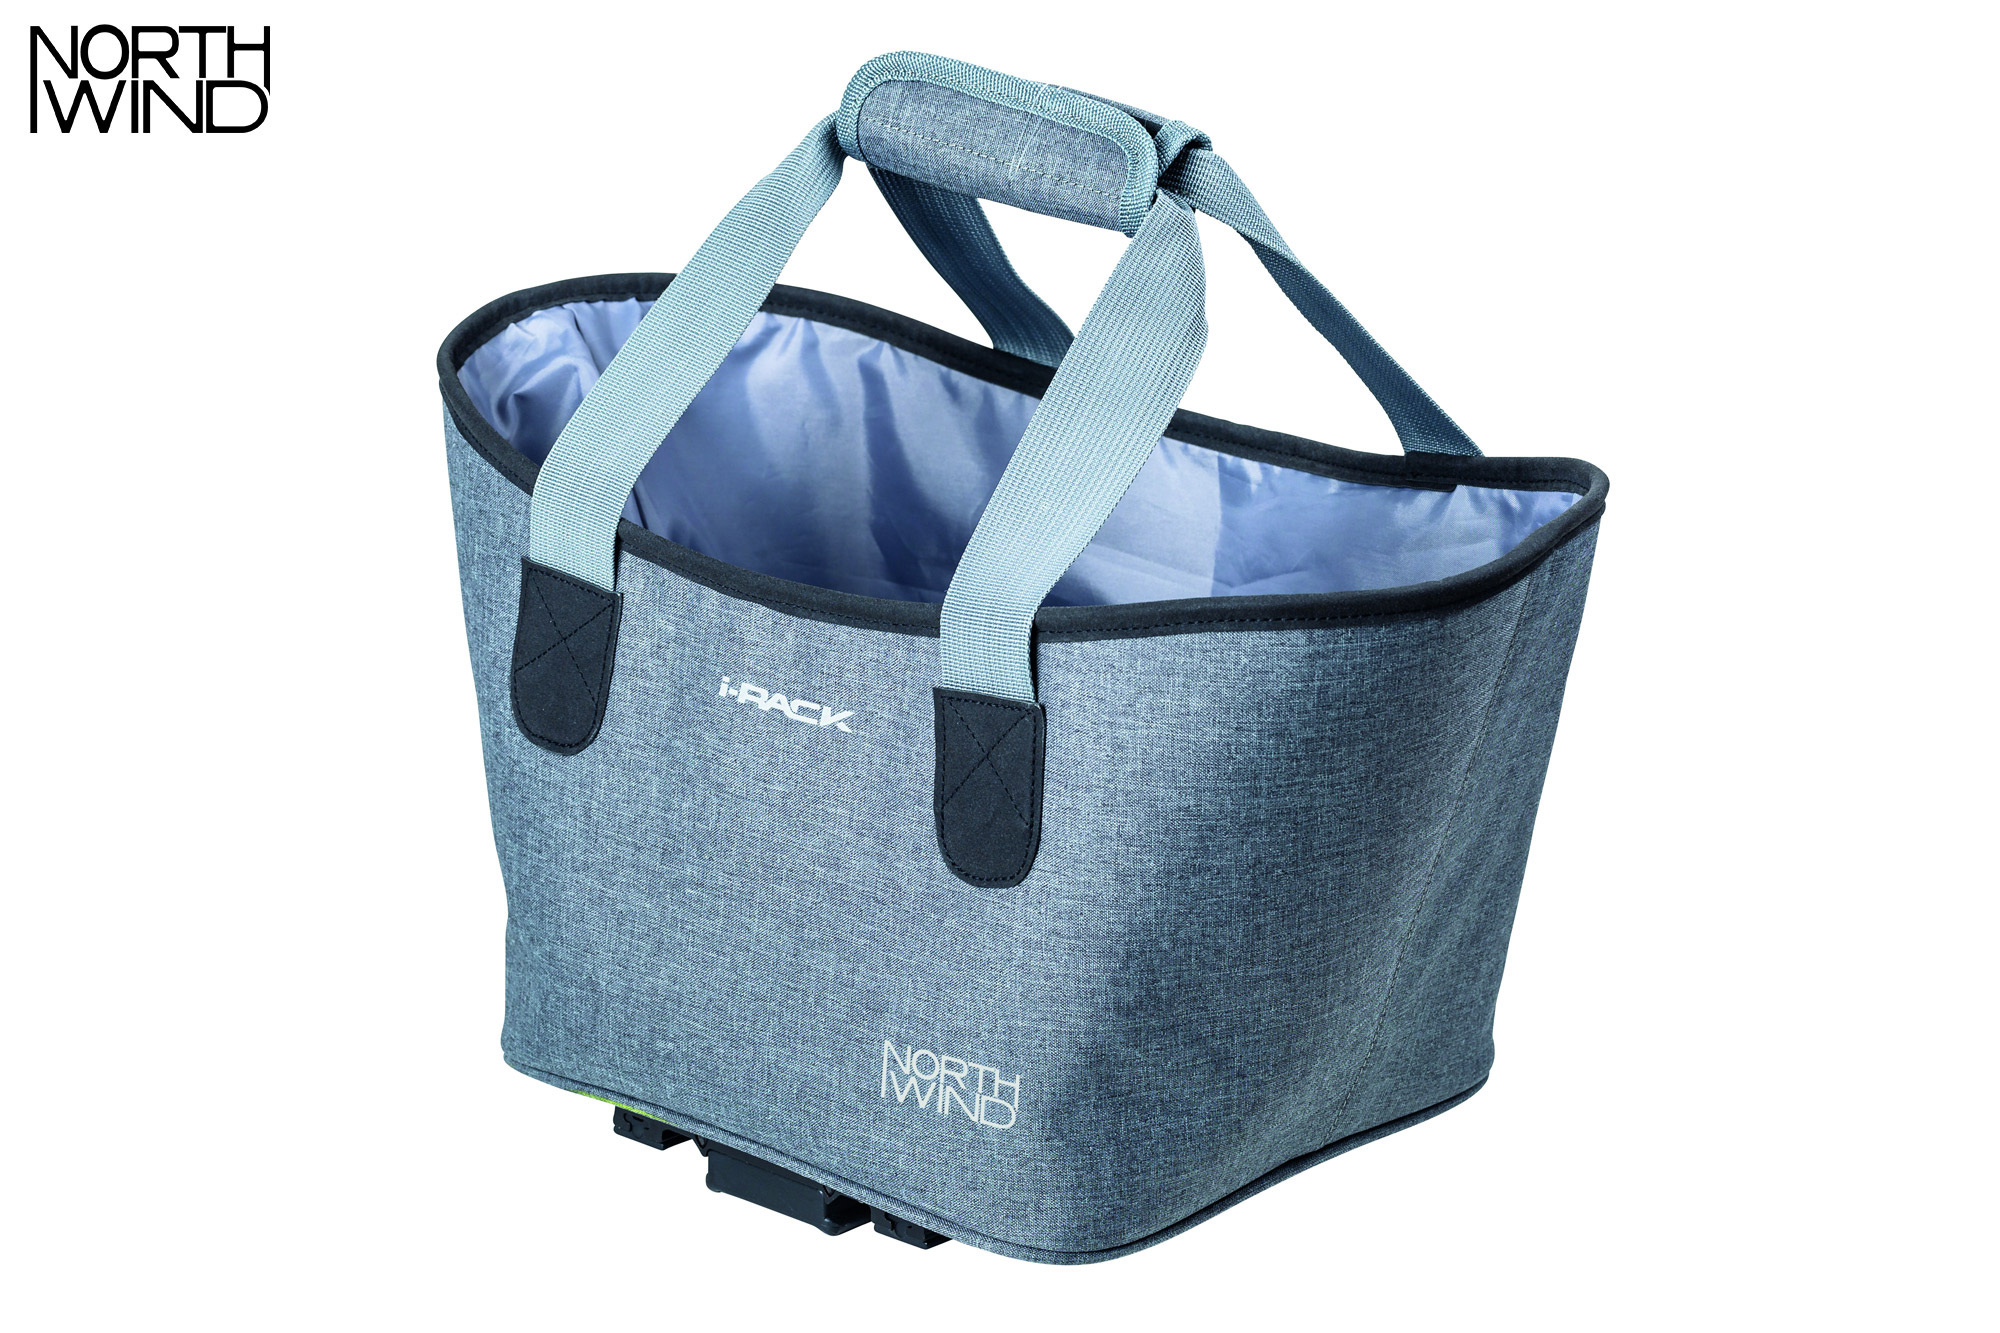 NORTHWIND Shopper Bag - grau - für iRack II